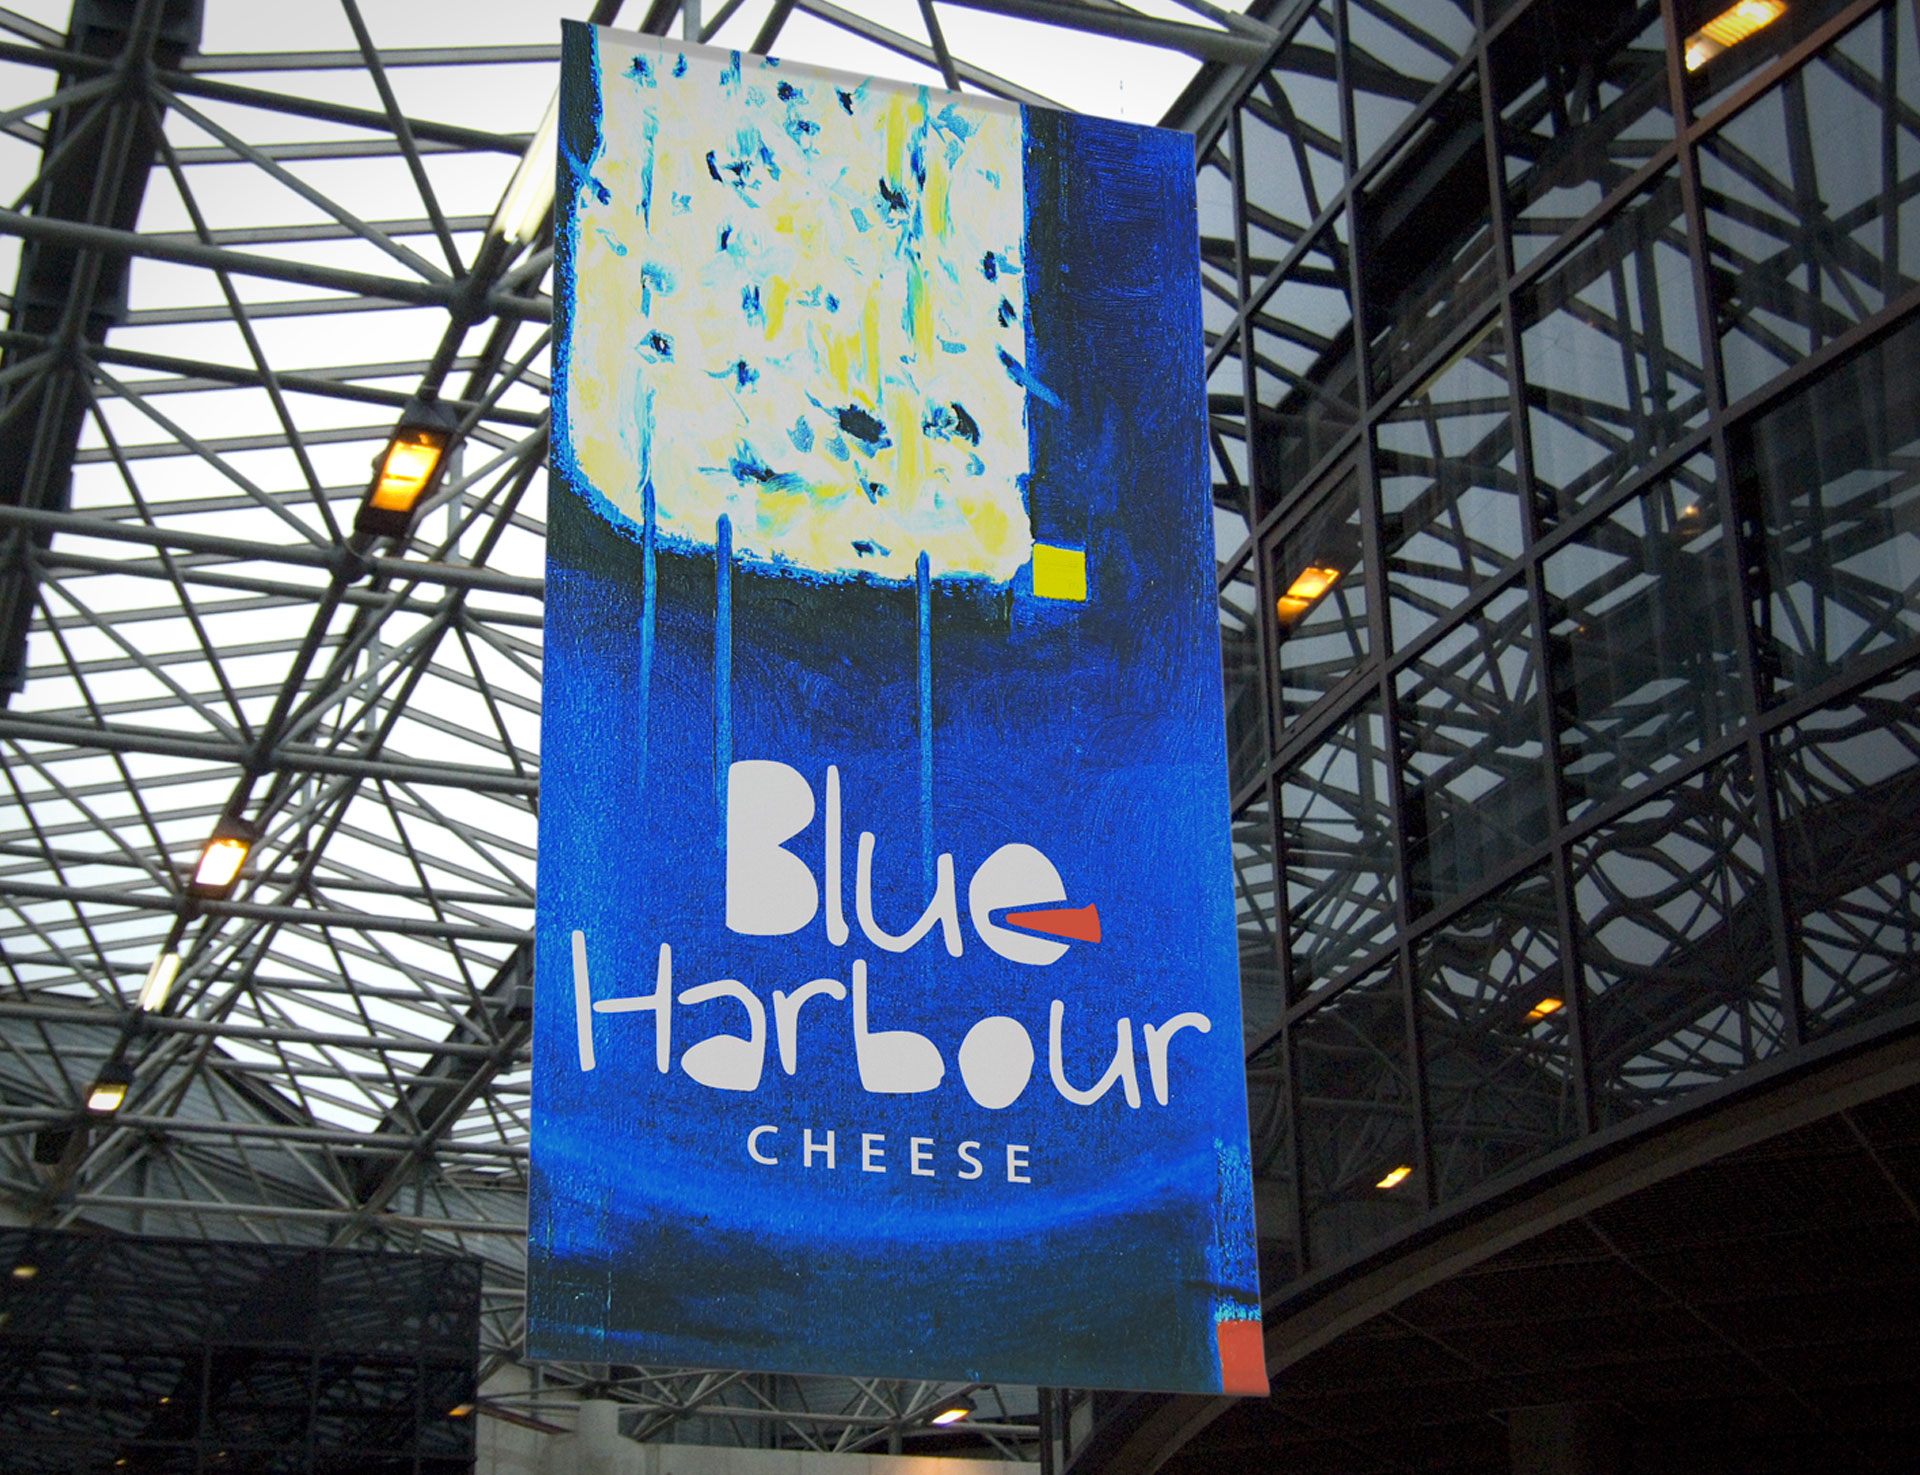 Print advertisement for Blue Harbour cheese